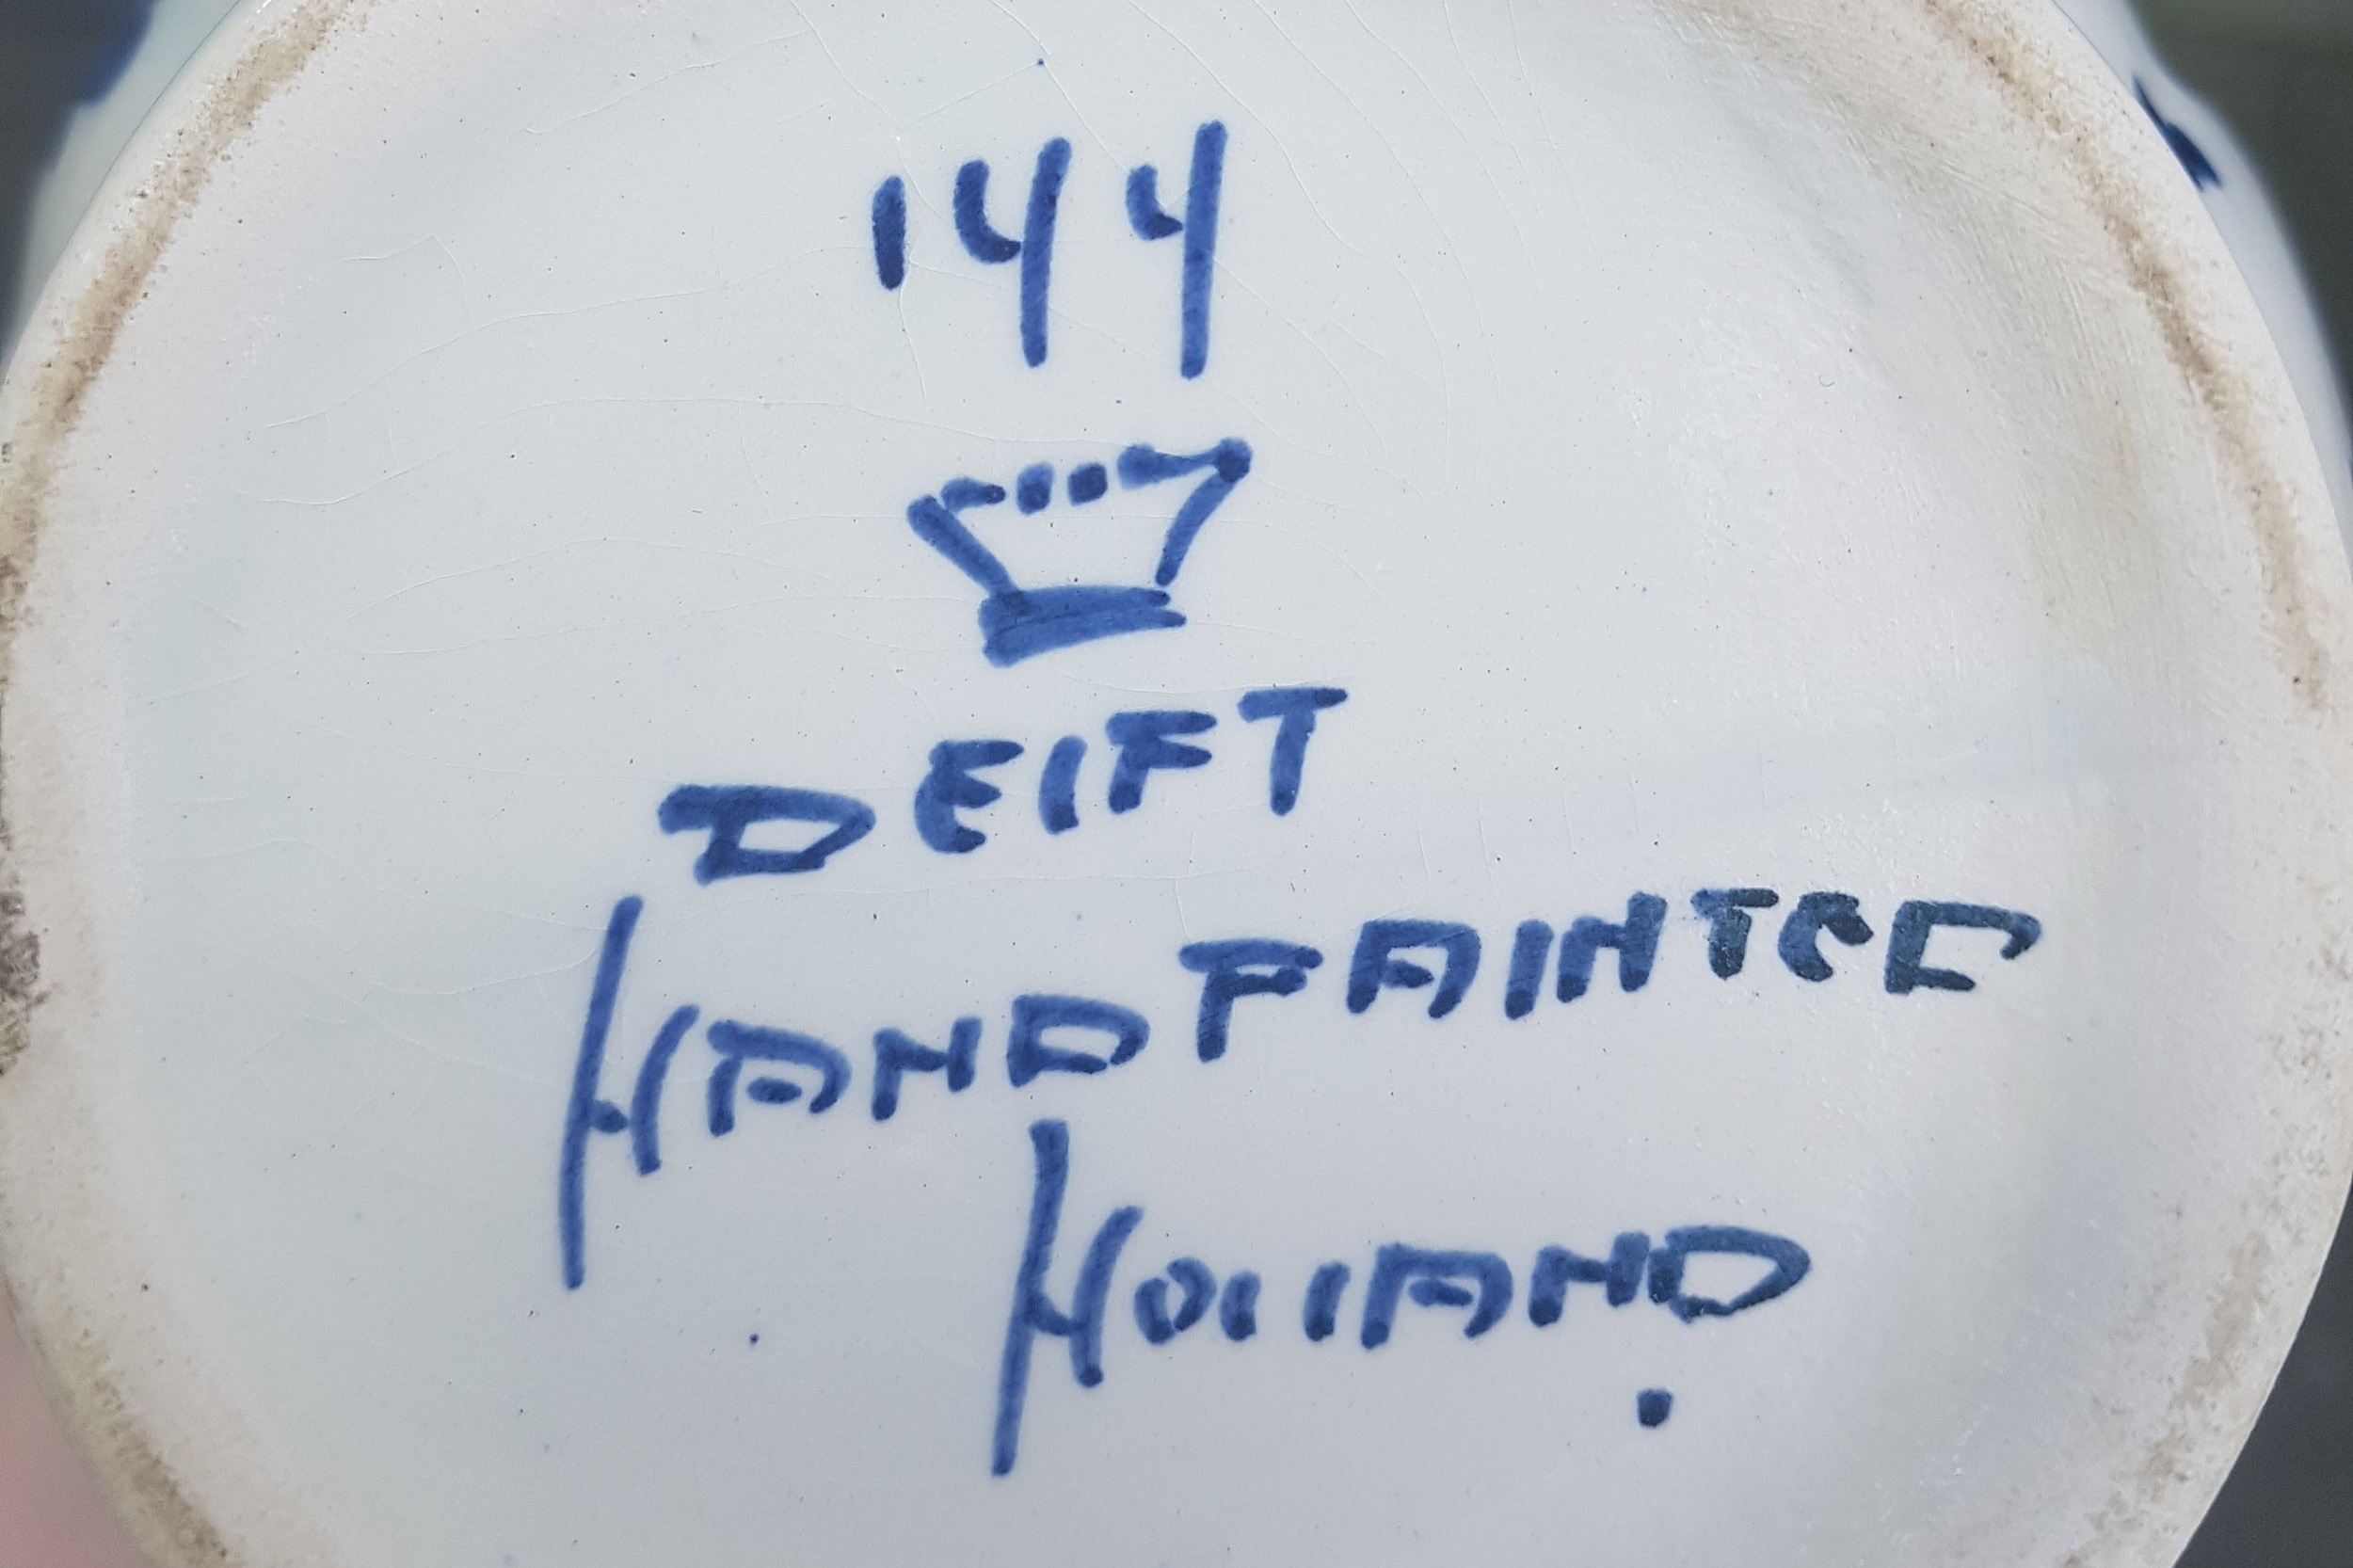 Scroll down for more tips on identifying Delftware.